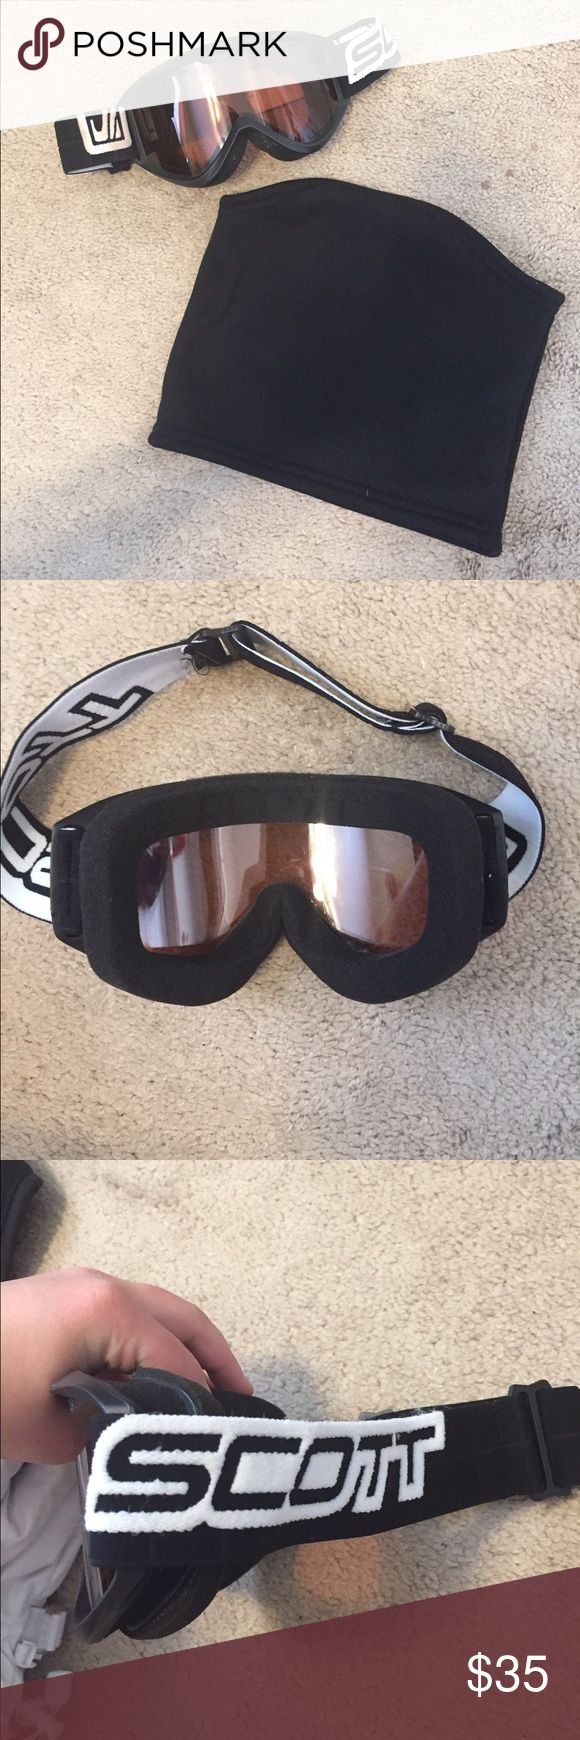 Ski Goggles Bundle Perfectly good Scott ski/snow goggles. I bought off Poshmark and only wore them for two days in Colorado! Neck warmer included! Scott Accessories Sunglasses